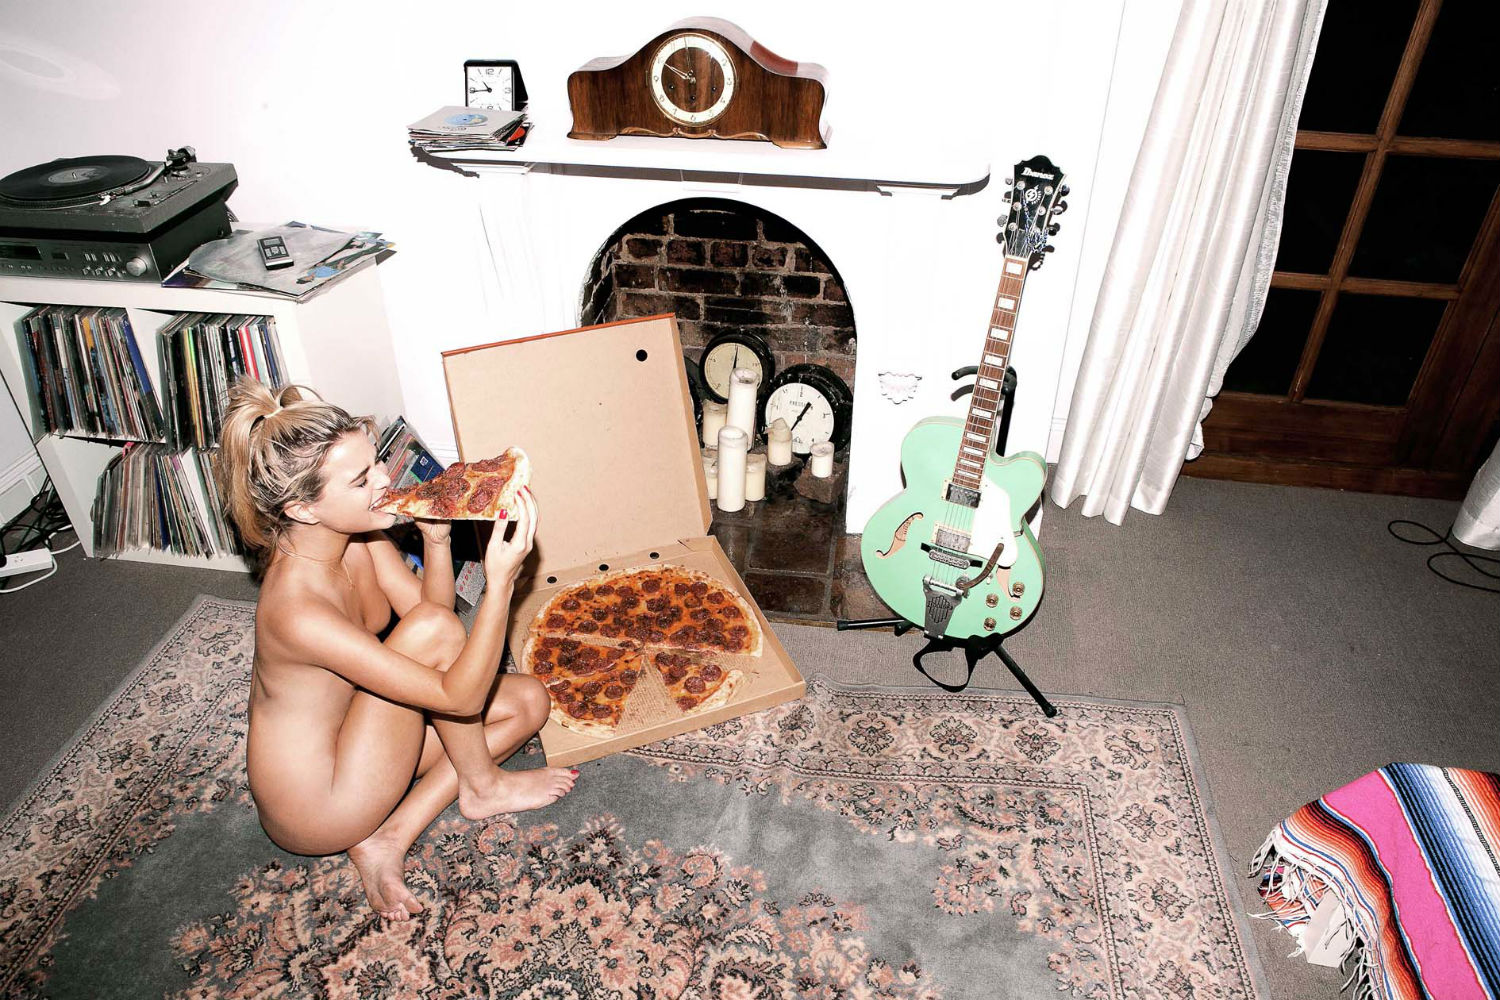 sarah bahbah erotic photography food sex model nude pizza